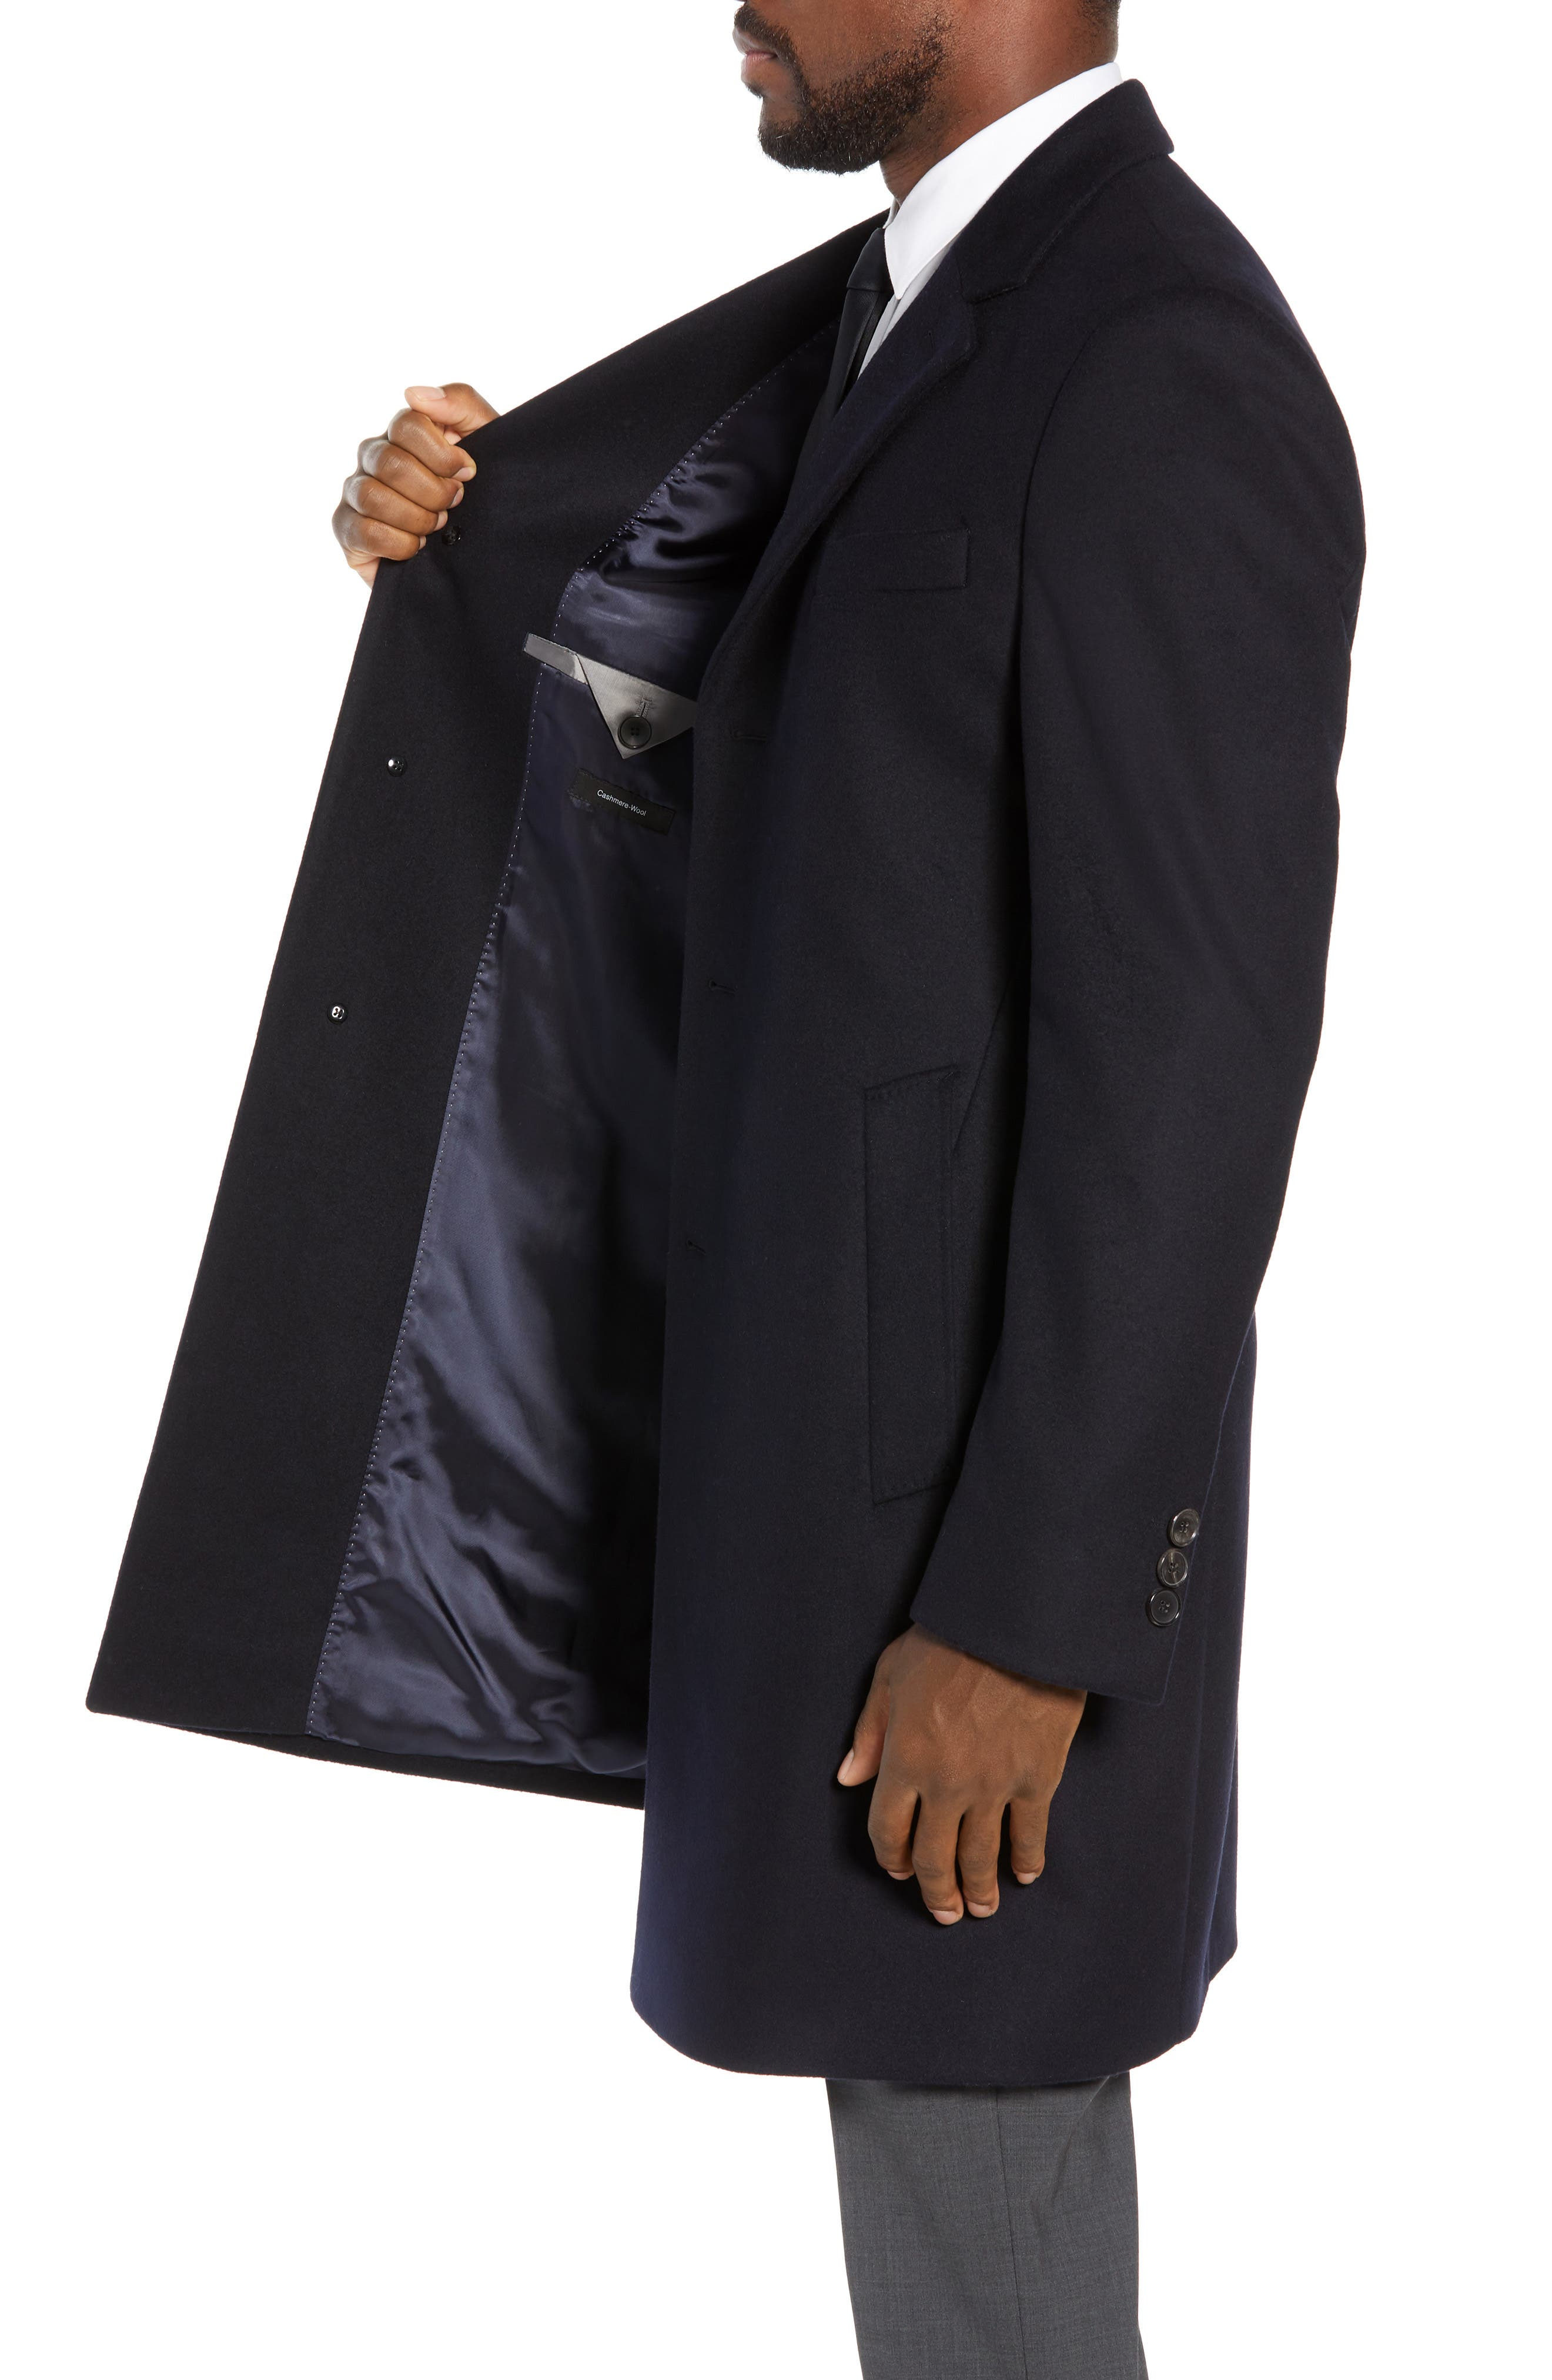 BOSS,                             Nye Regular Fit Solid Wool & Cashmere Topcoat,                             Alternate thumbnail 3, color,                             DARK BLUE